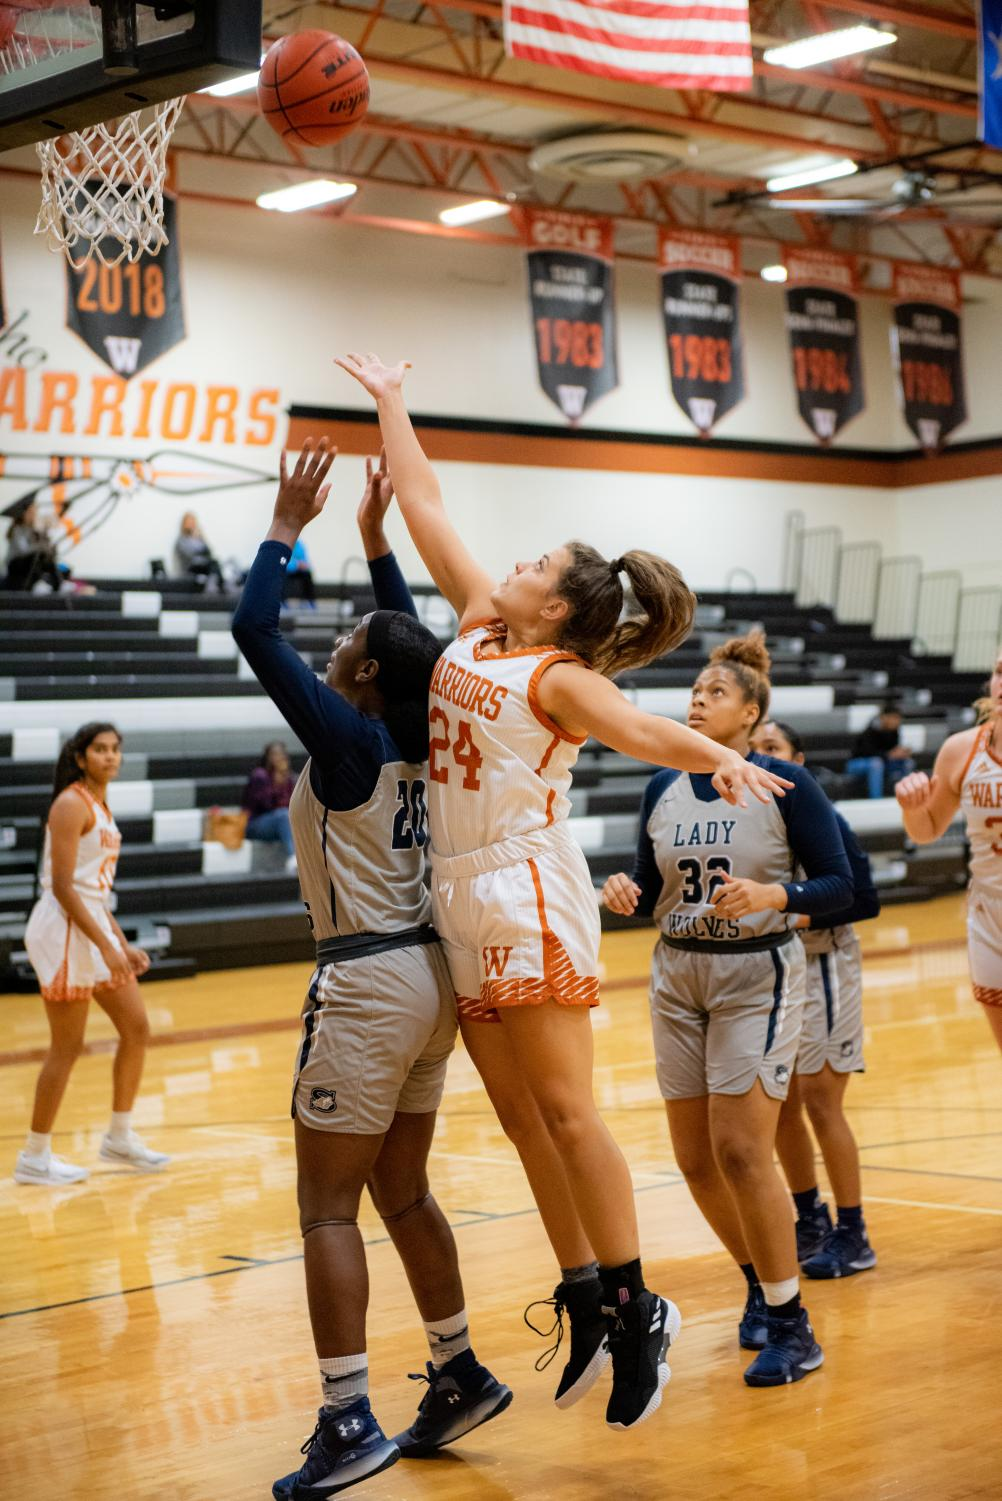 Jumping%2C+Kooper+Giles+%2720+rebounds+her+missed+shot.+After+the+rebound+the+team+was+able+to+get+another+chance+at+the+shot+and+ended+up+shooting+a+two-pointer.